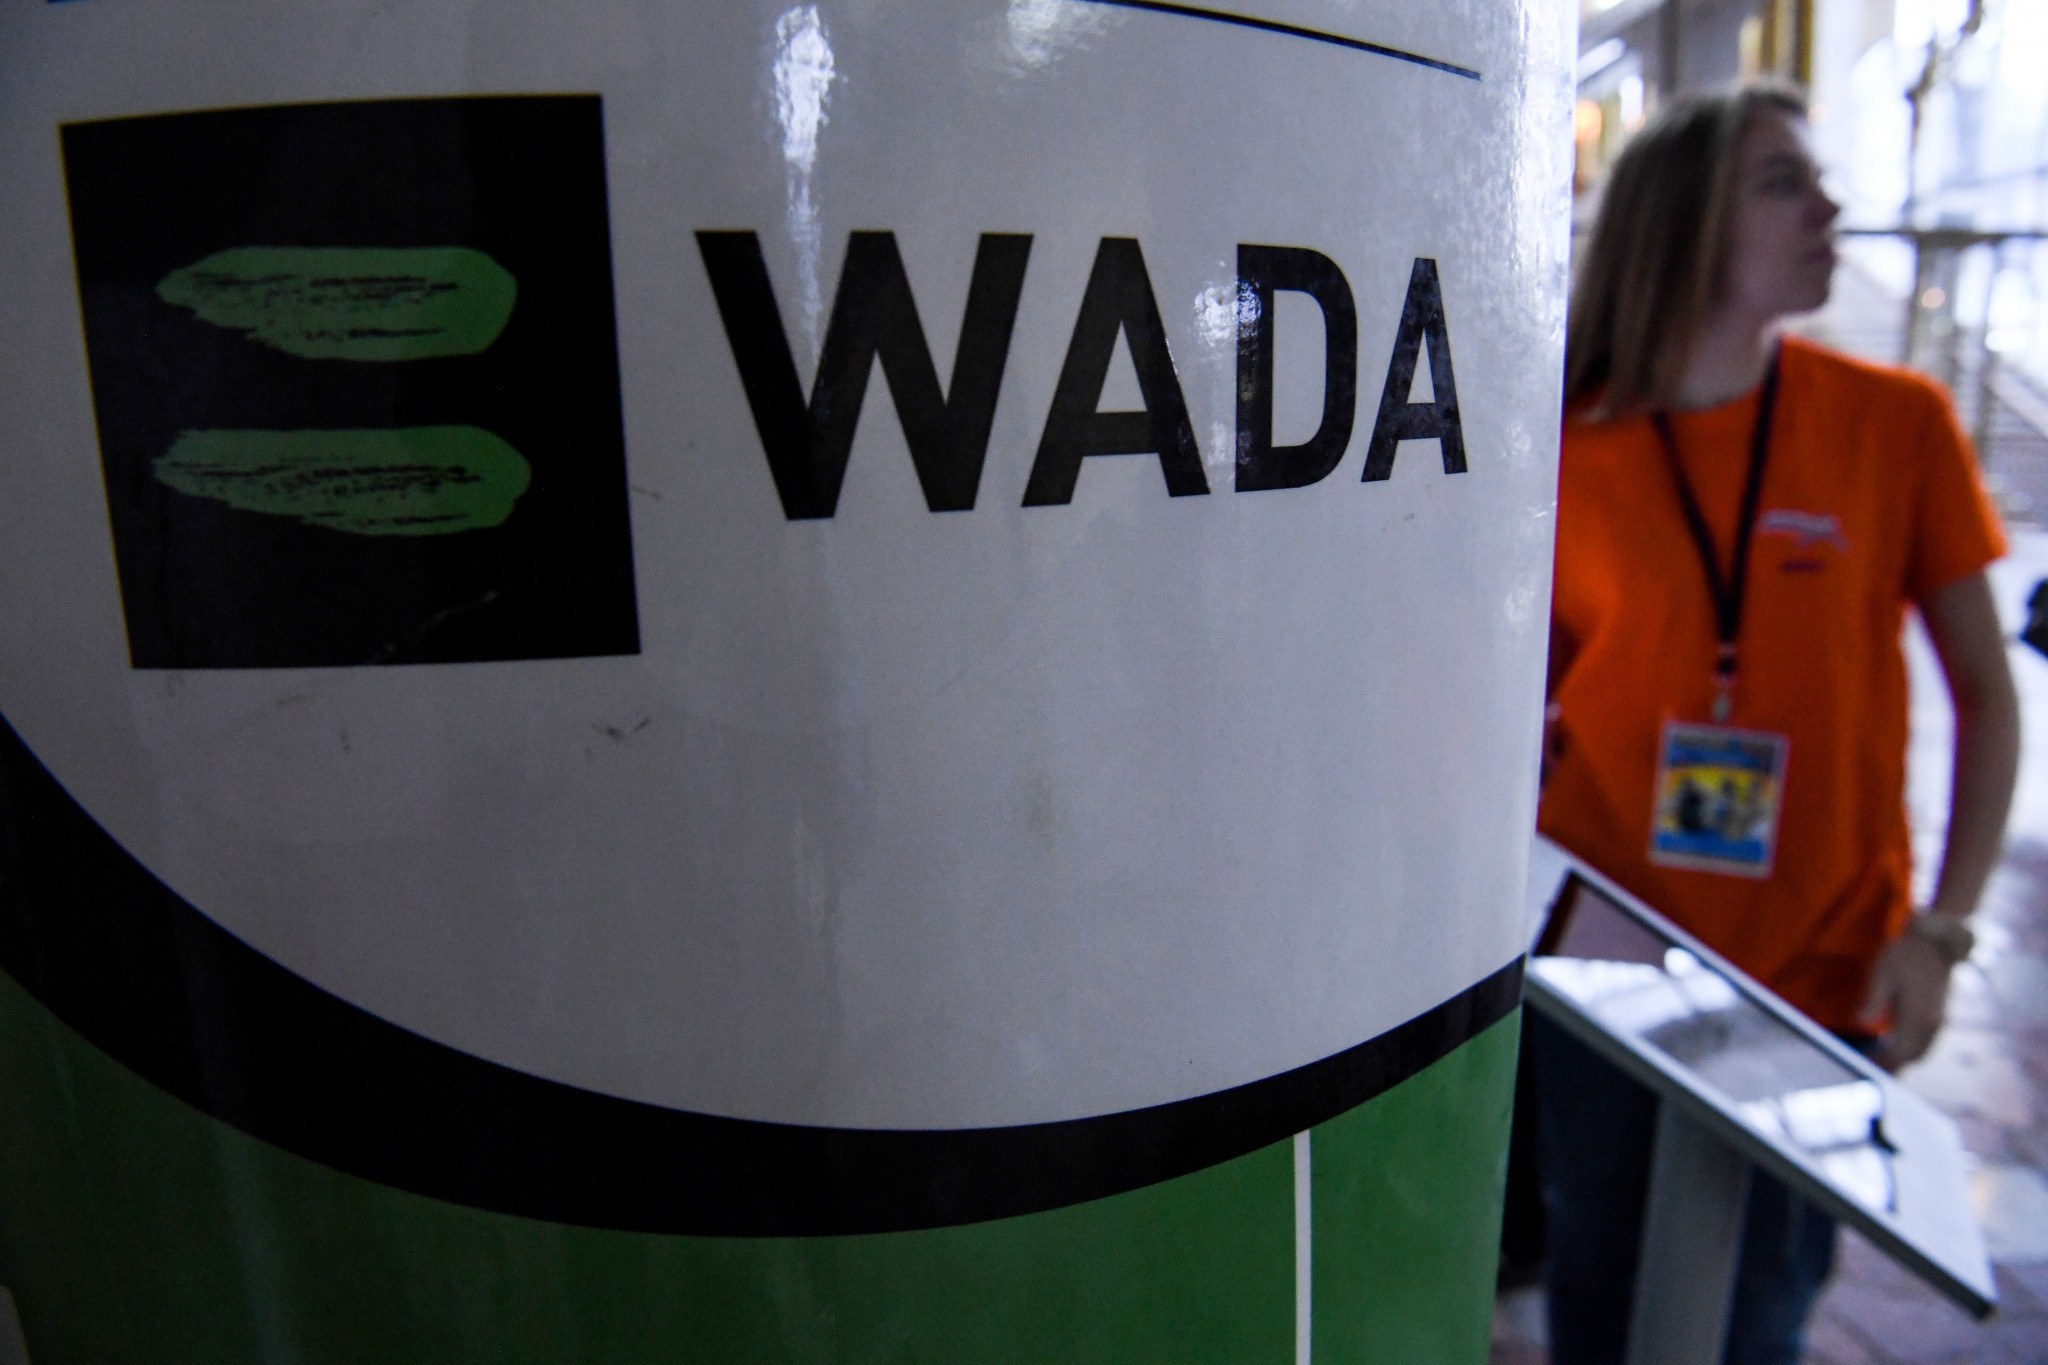 The dispute between WADA and USADA has intensified in recent months ©Getty Images